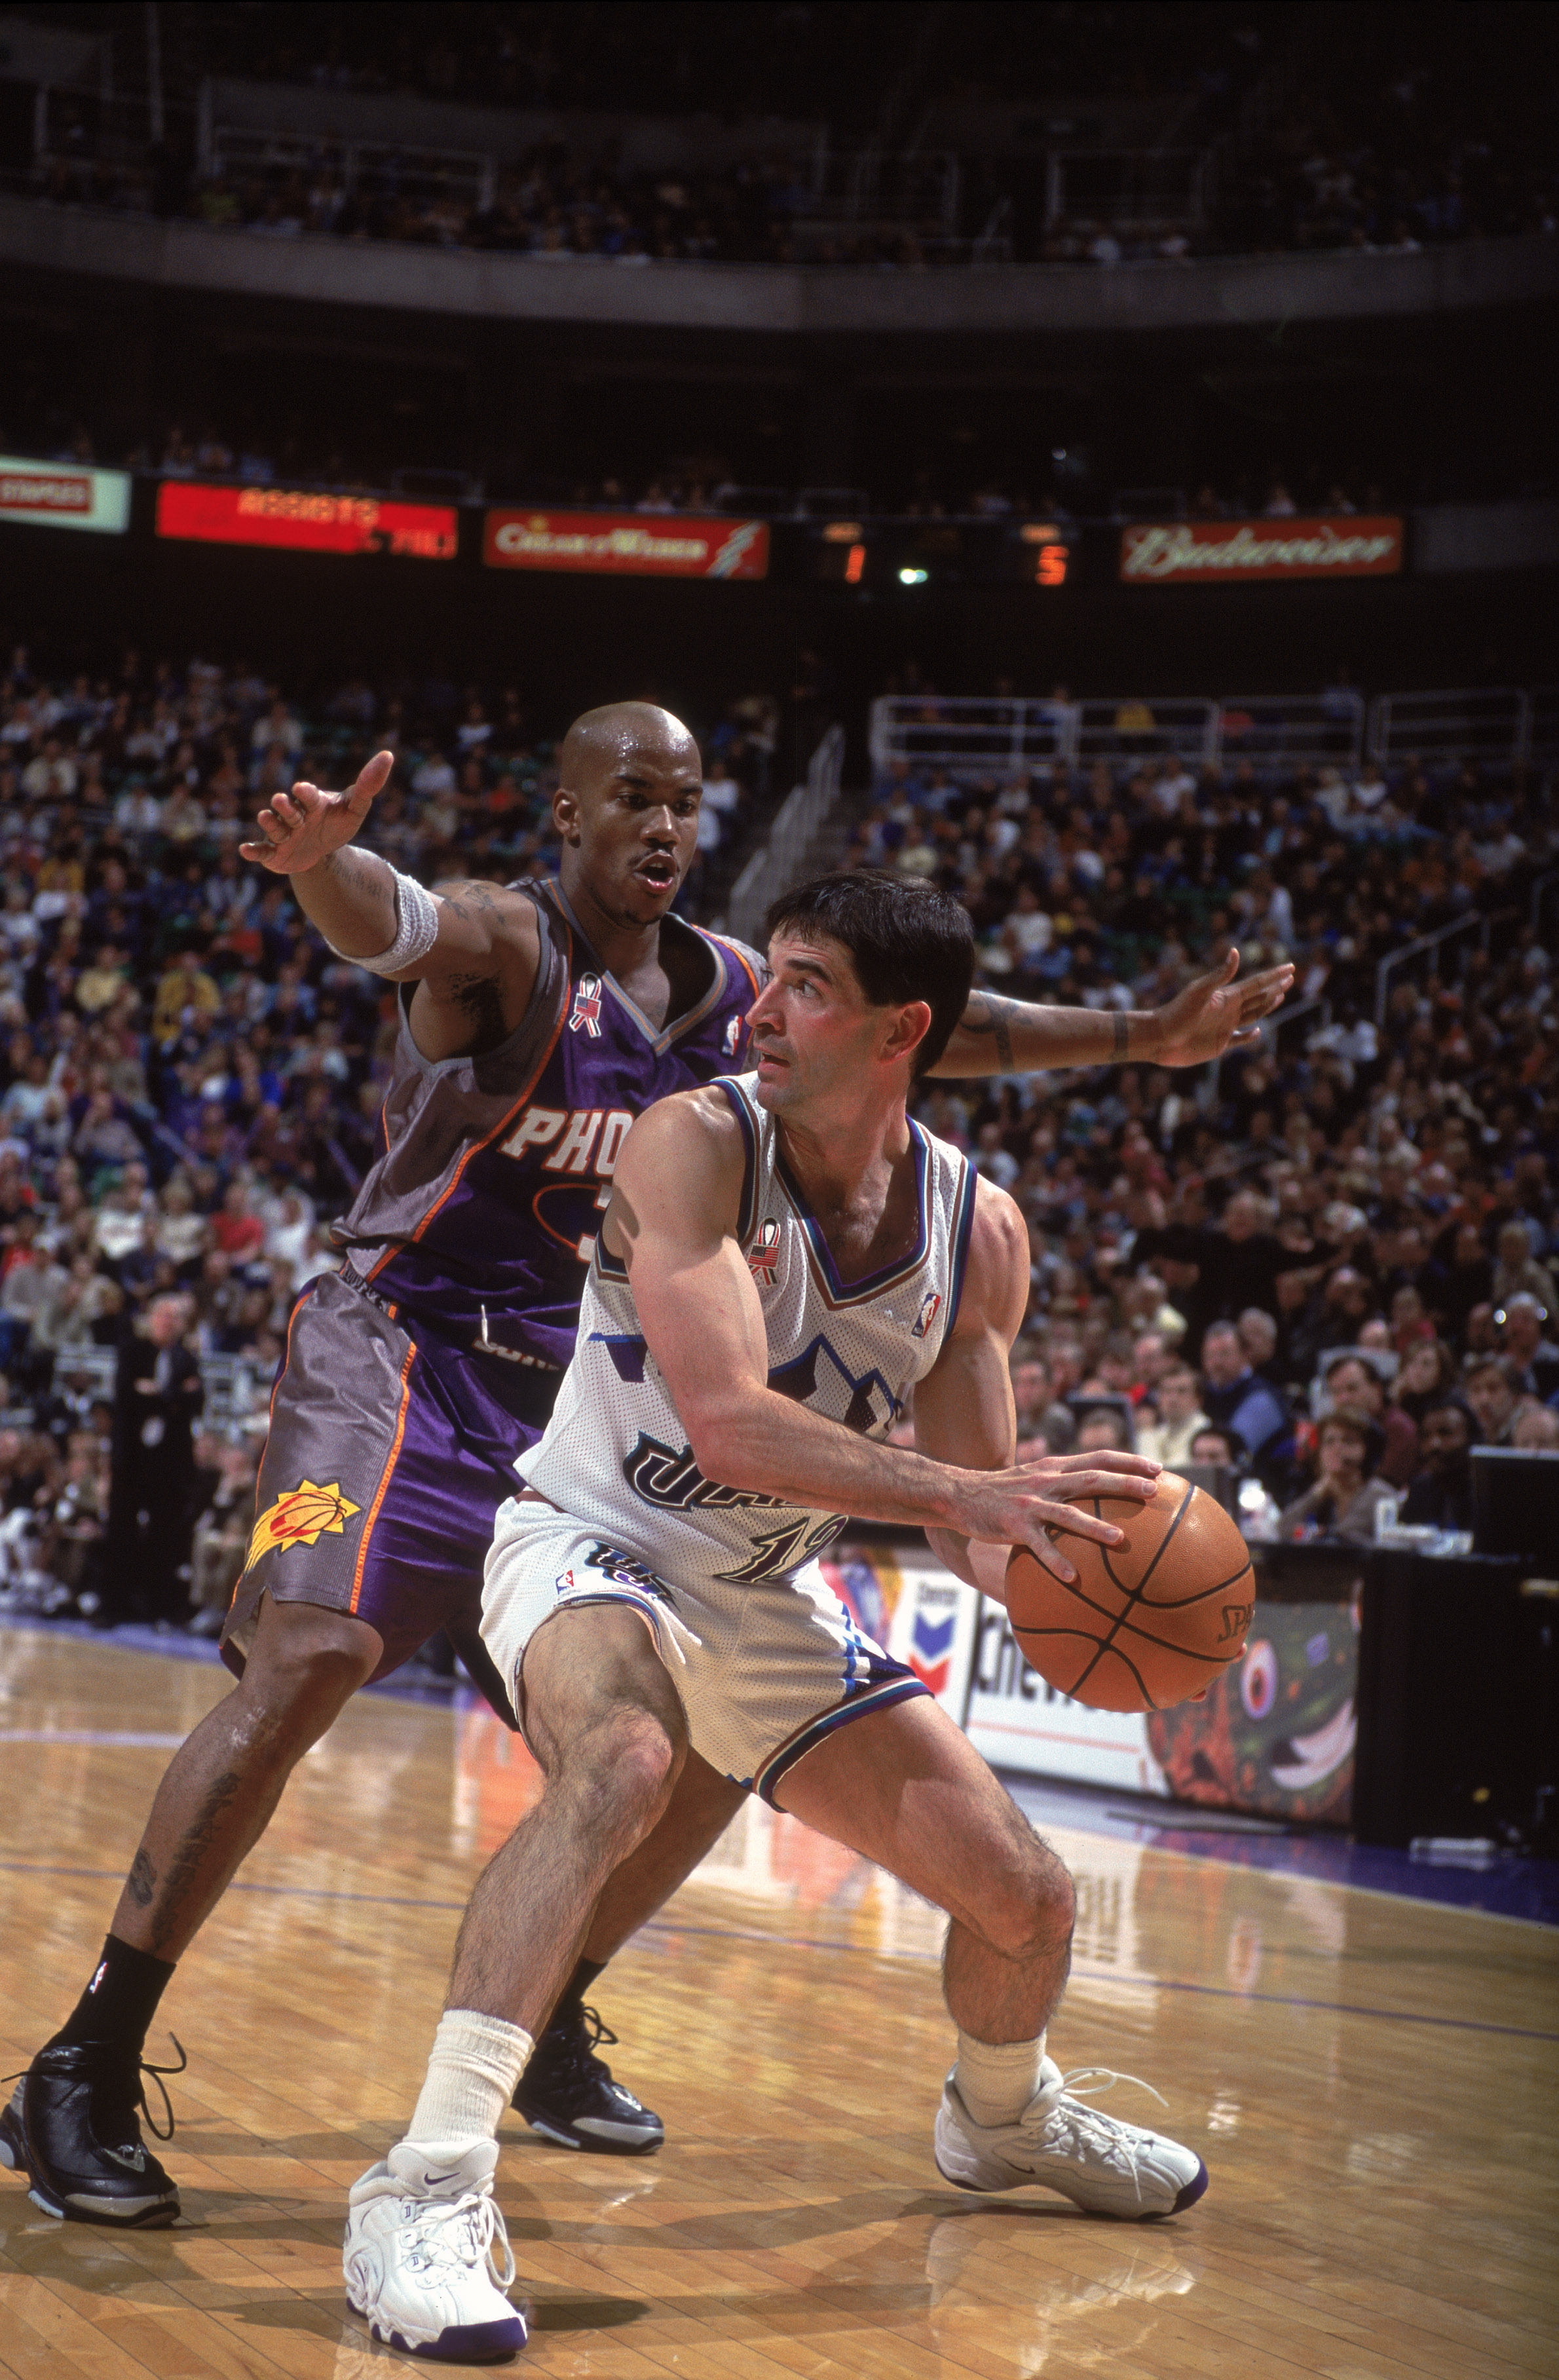 26 Nov 2001:  John Stockton #12  of the Utah Jazz looks to move the ball as he is guarded by Stephon Marbury #3 of the Phoenix Suns during the game at the Delta Center in Salt Lake City, Utah. The Suns defeated the Jazz 111-104. NOTE TO USER: User express